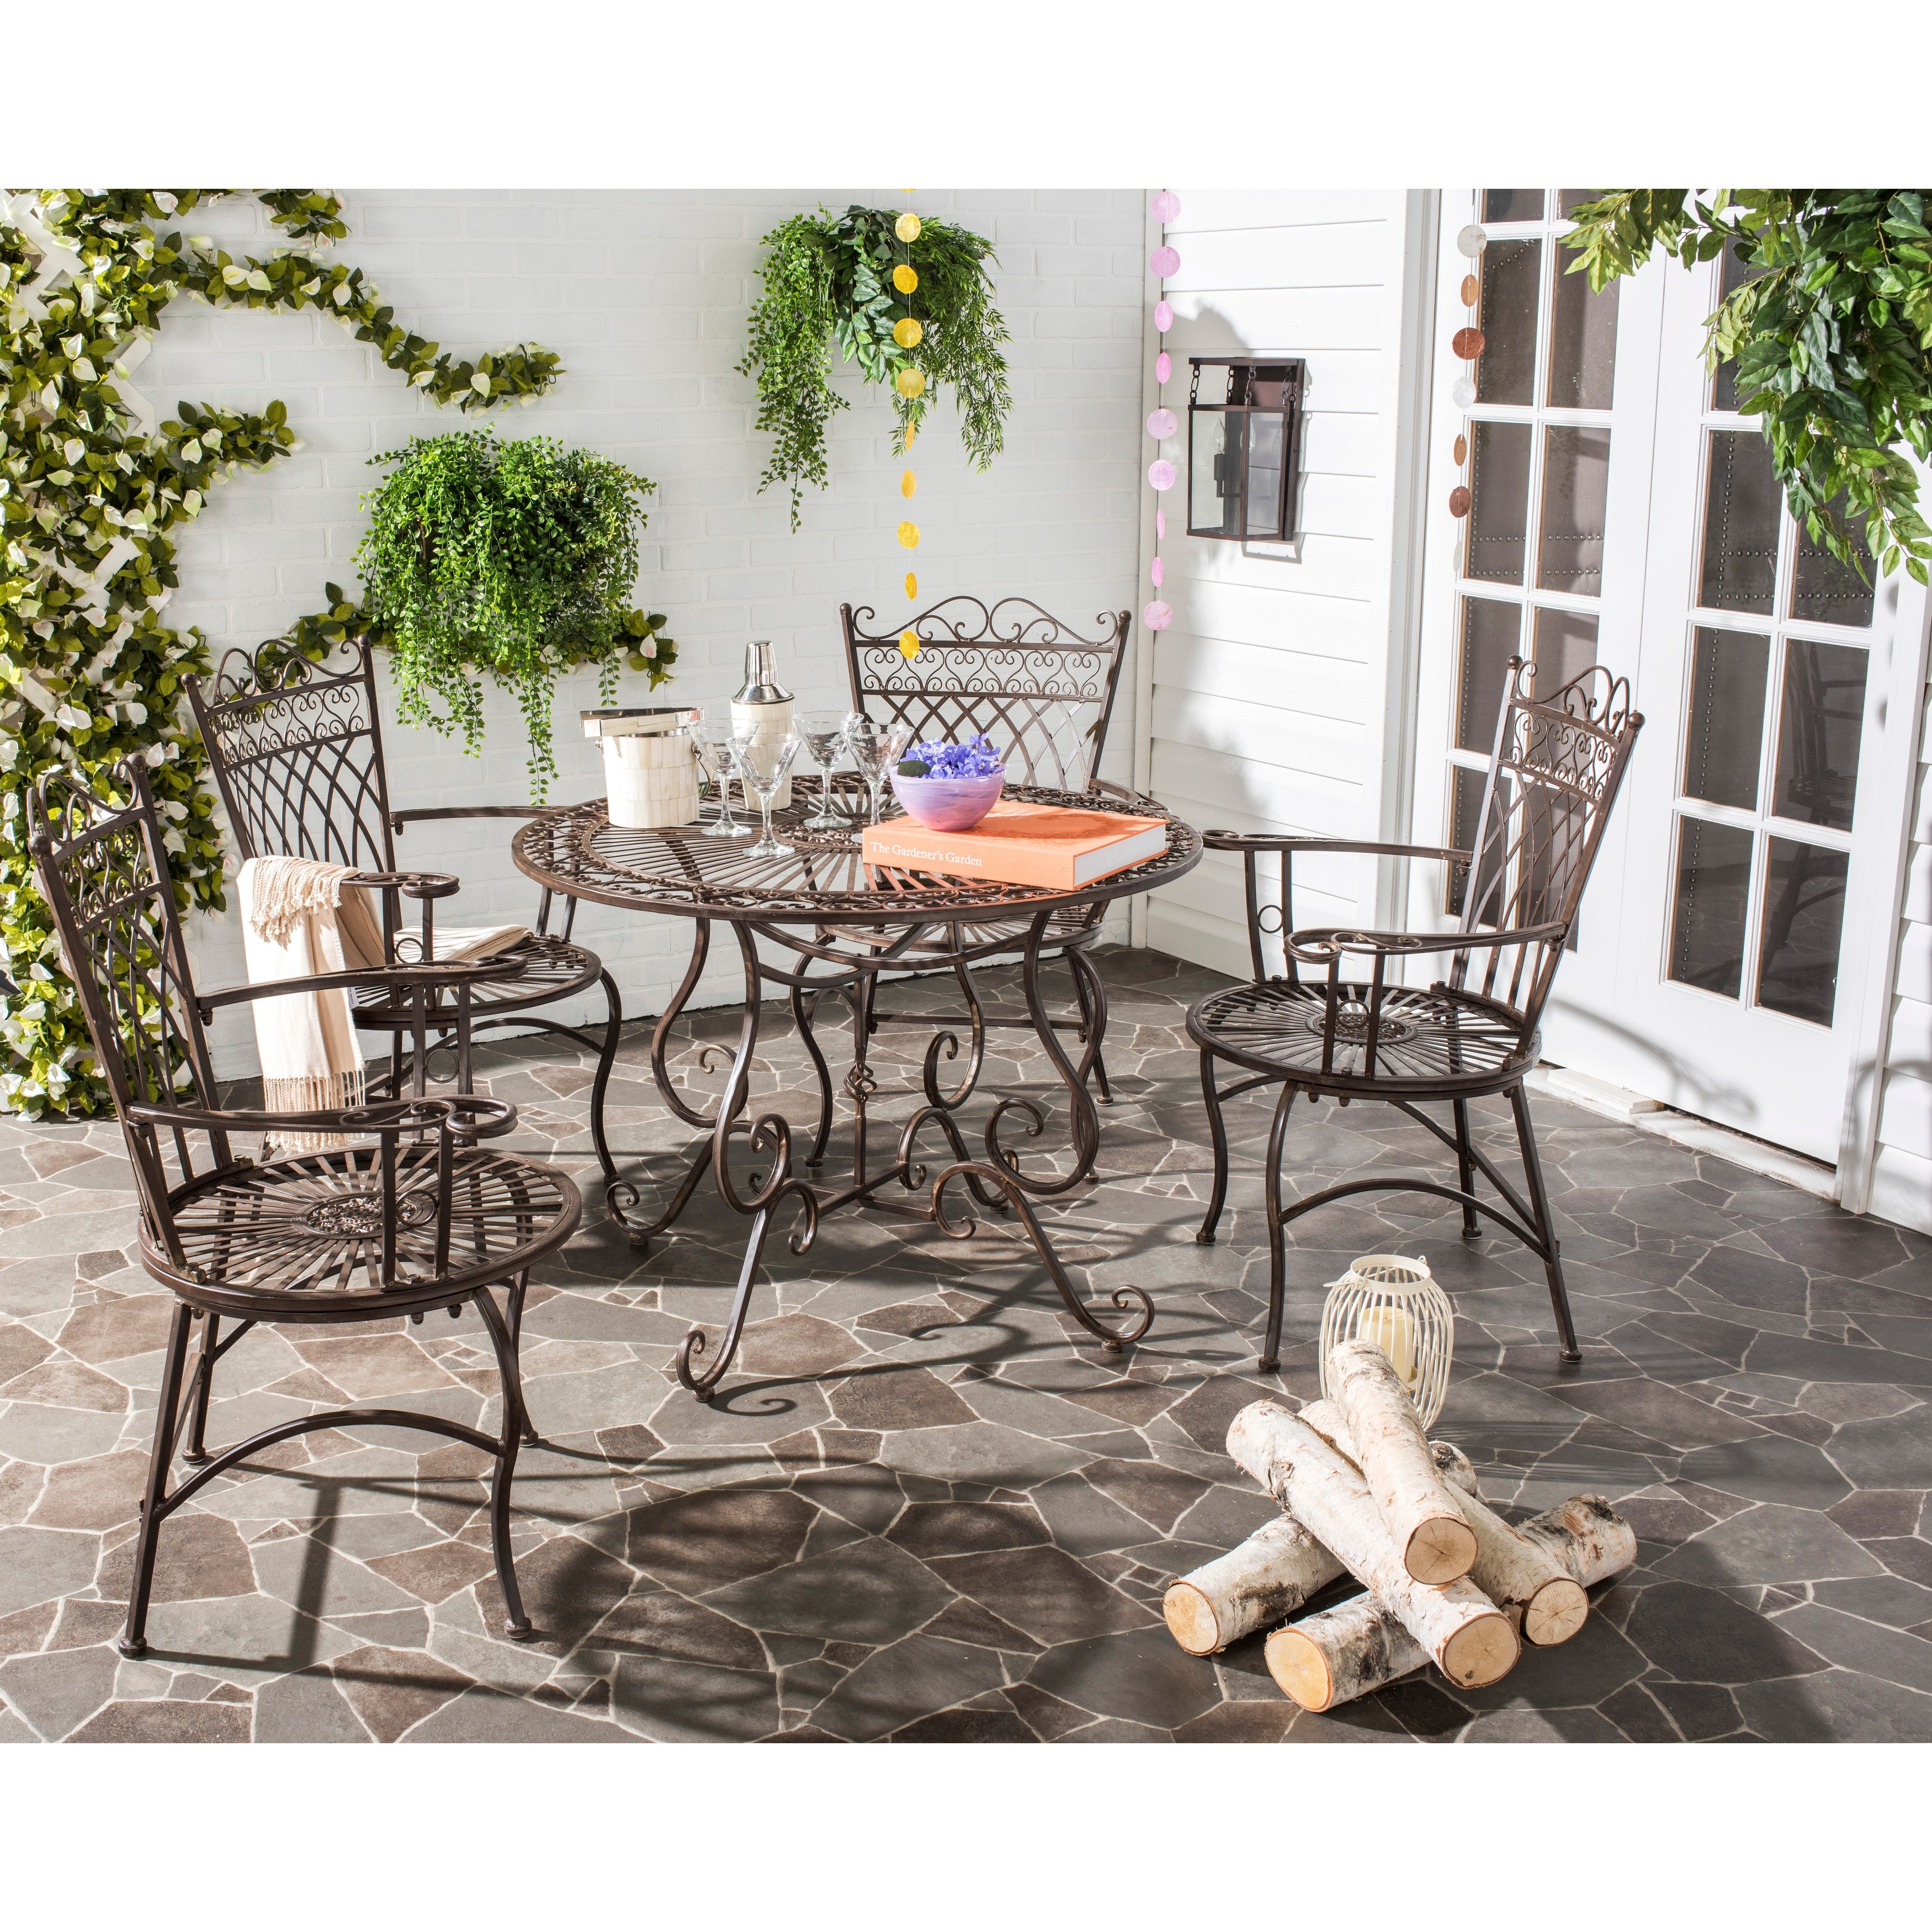 Details about Outdoor Dining Set 5 Table Chairs Vintage Rustic Wrought Iron  Patio Furniture